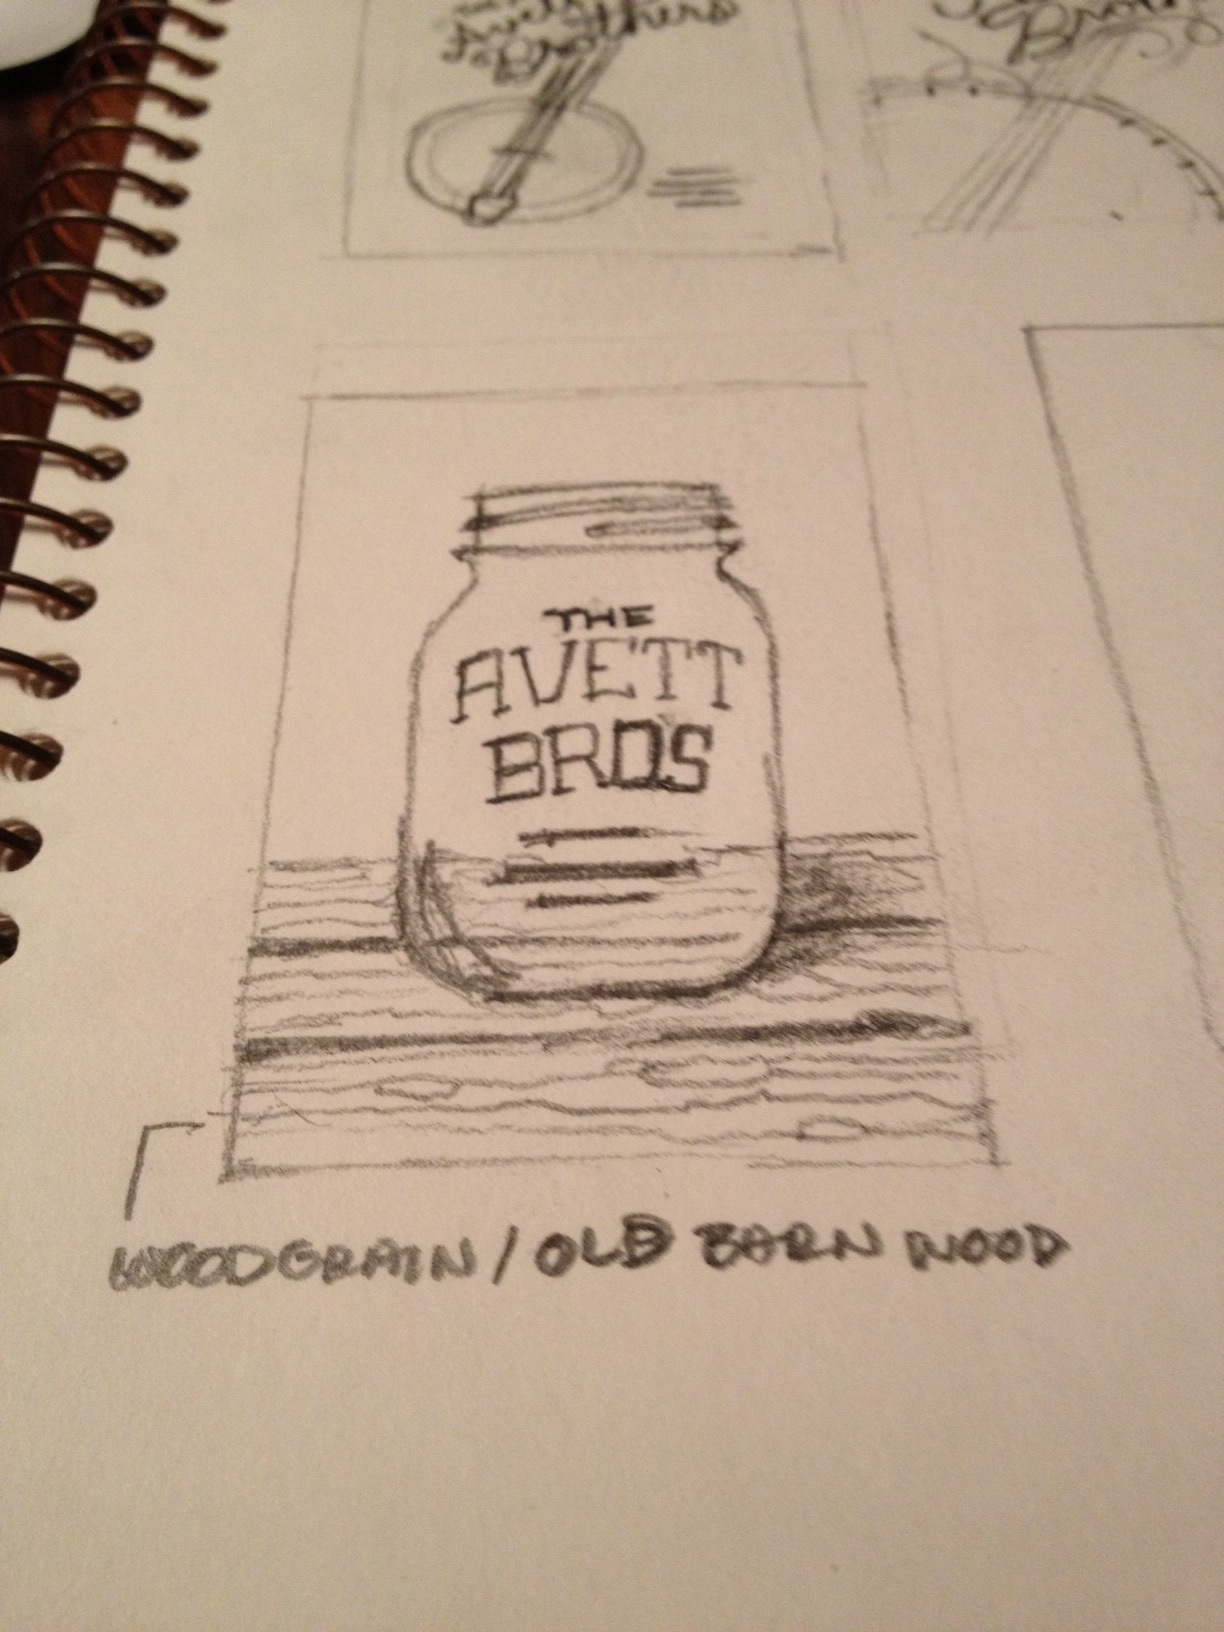 The Avett Brothers - image 10 - student project